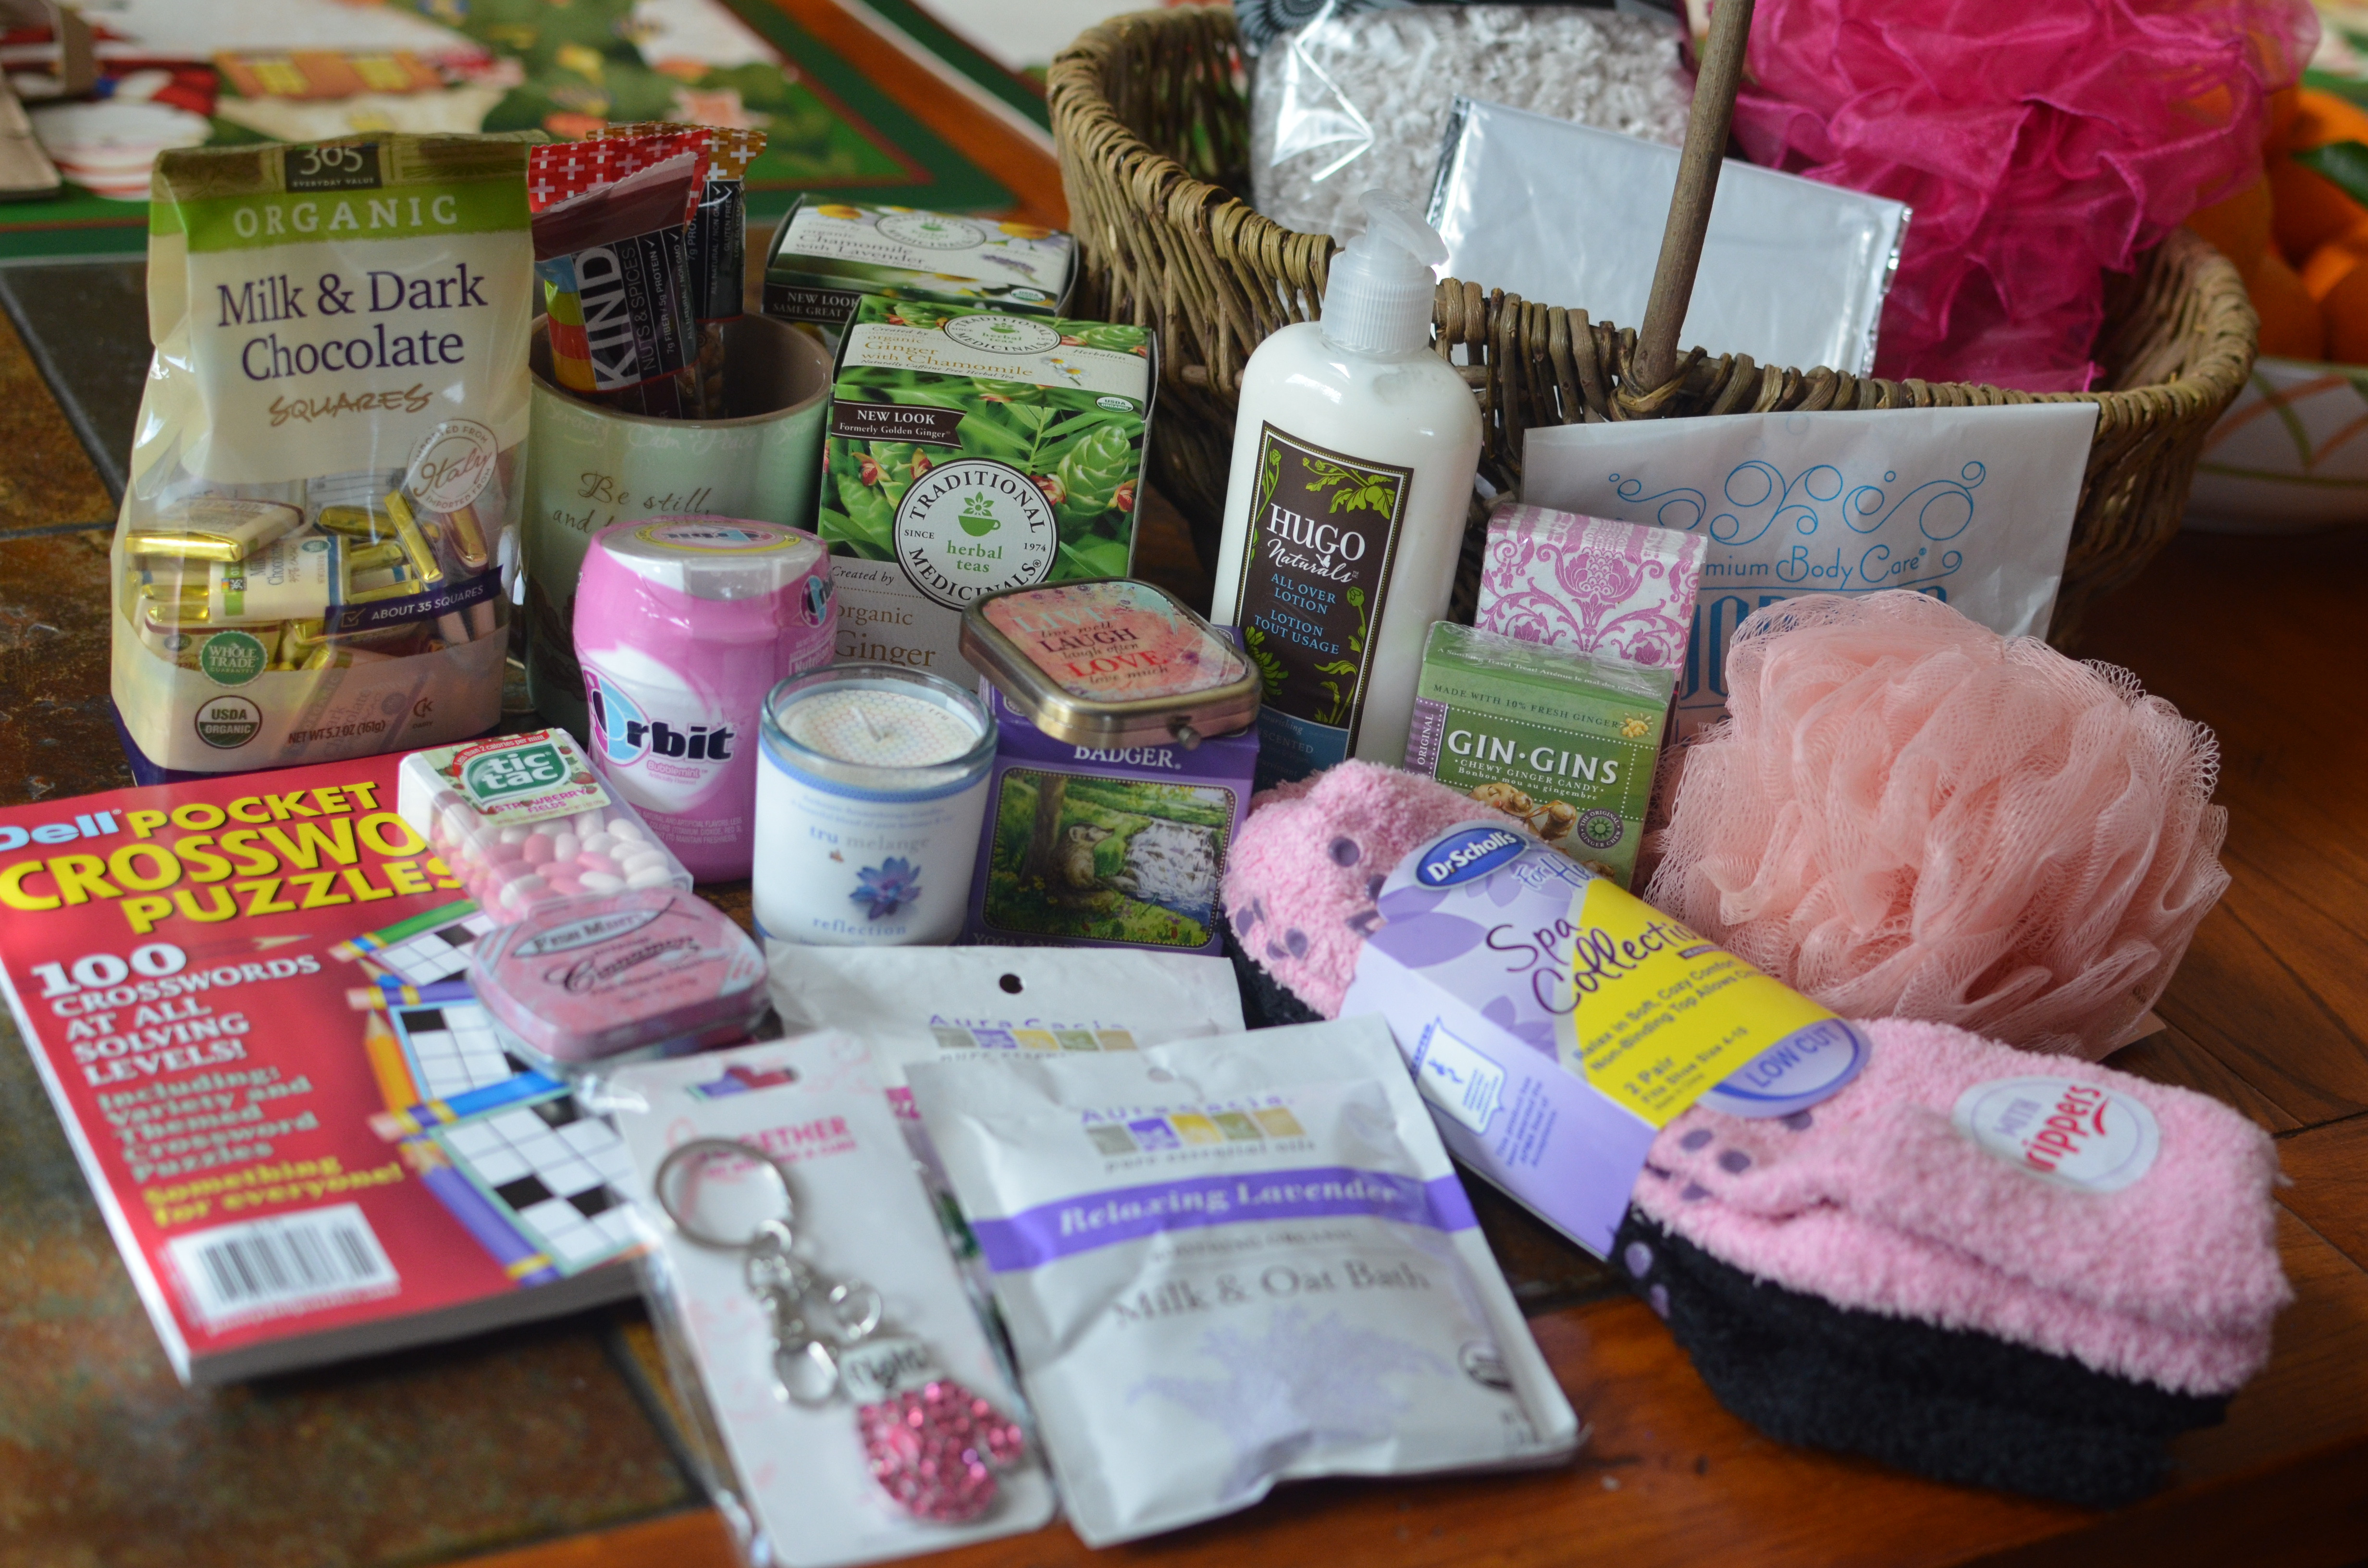 Best ideas about Gift Basket For Cancer Patient Ideas . Save or Pin World Cancer Day Healing Gift Basket Now.